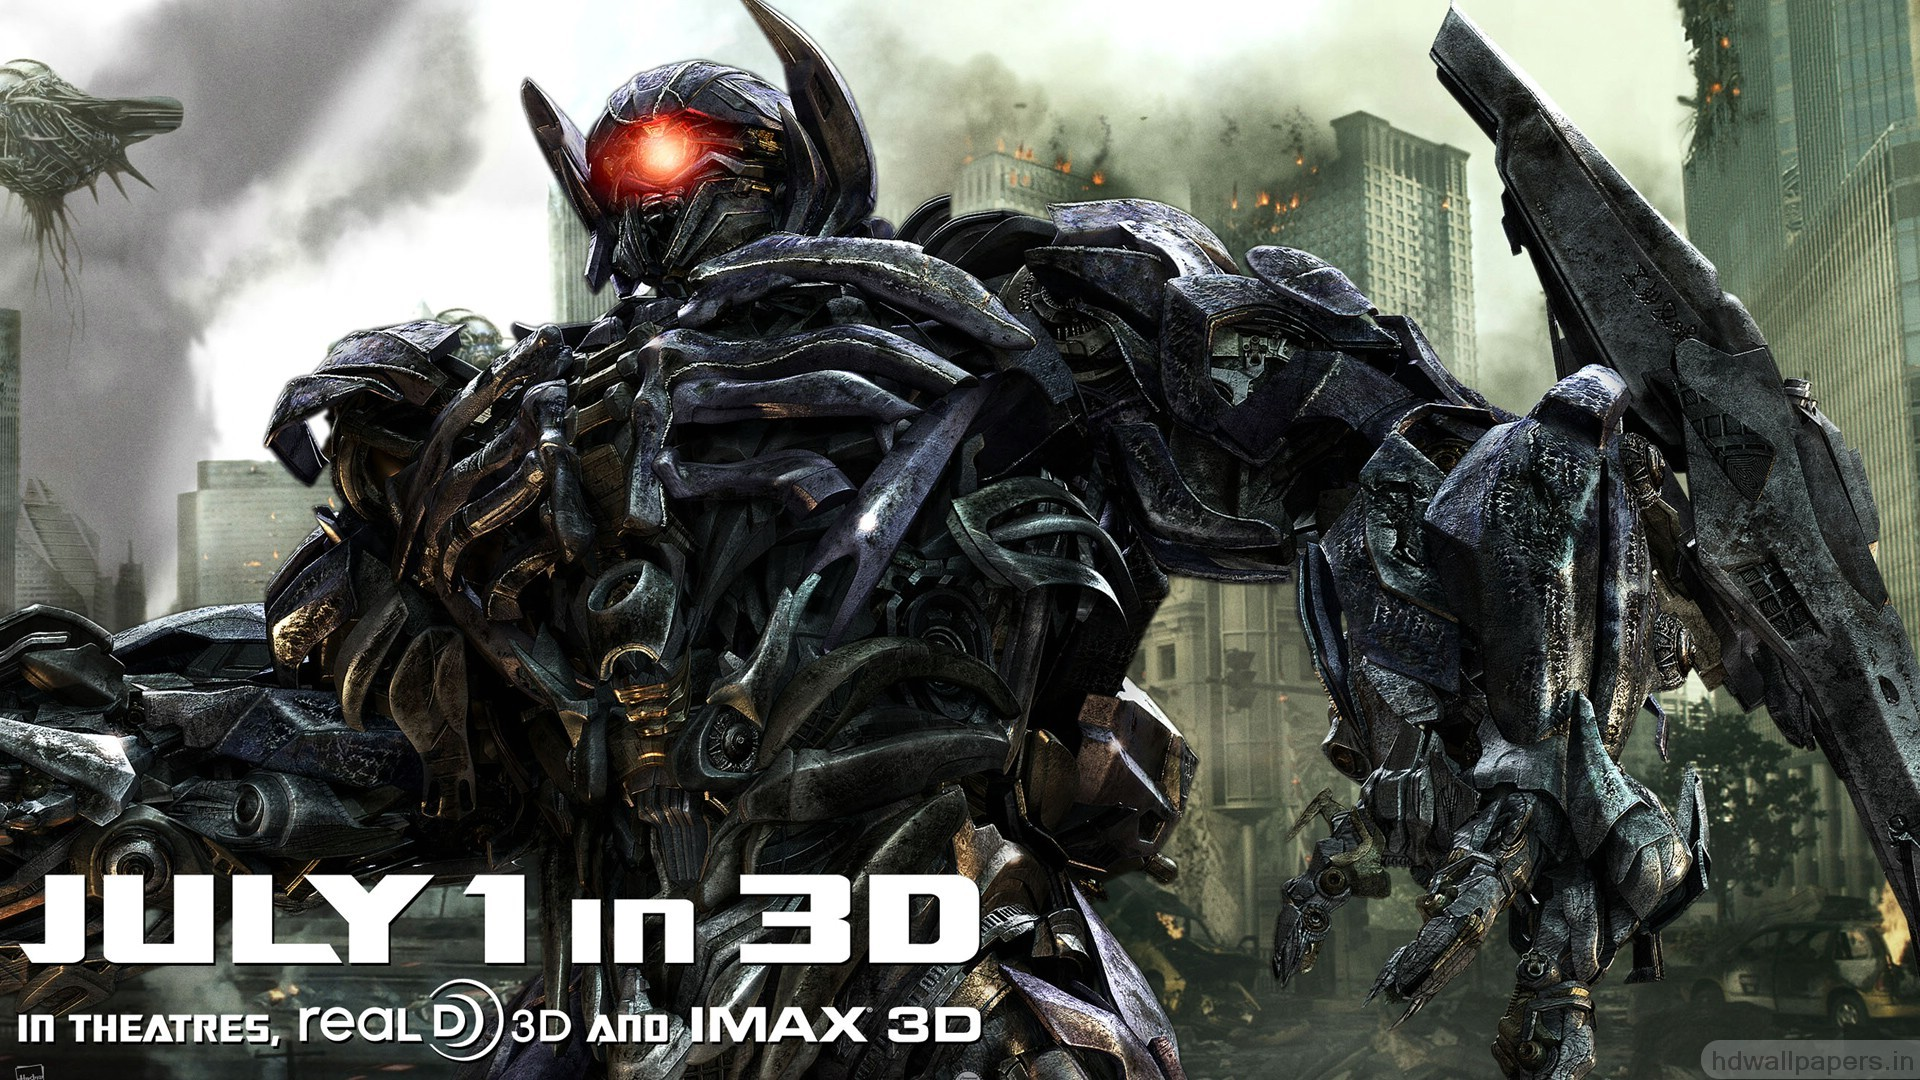 Transformers Wallpaper Hd For Android Shockwave In Transformers 3 Wallpapers Hd Wallpapers